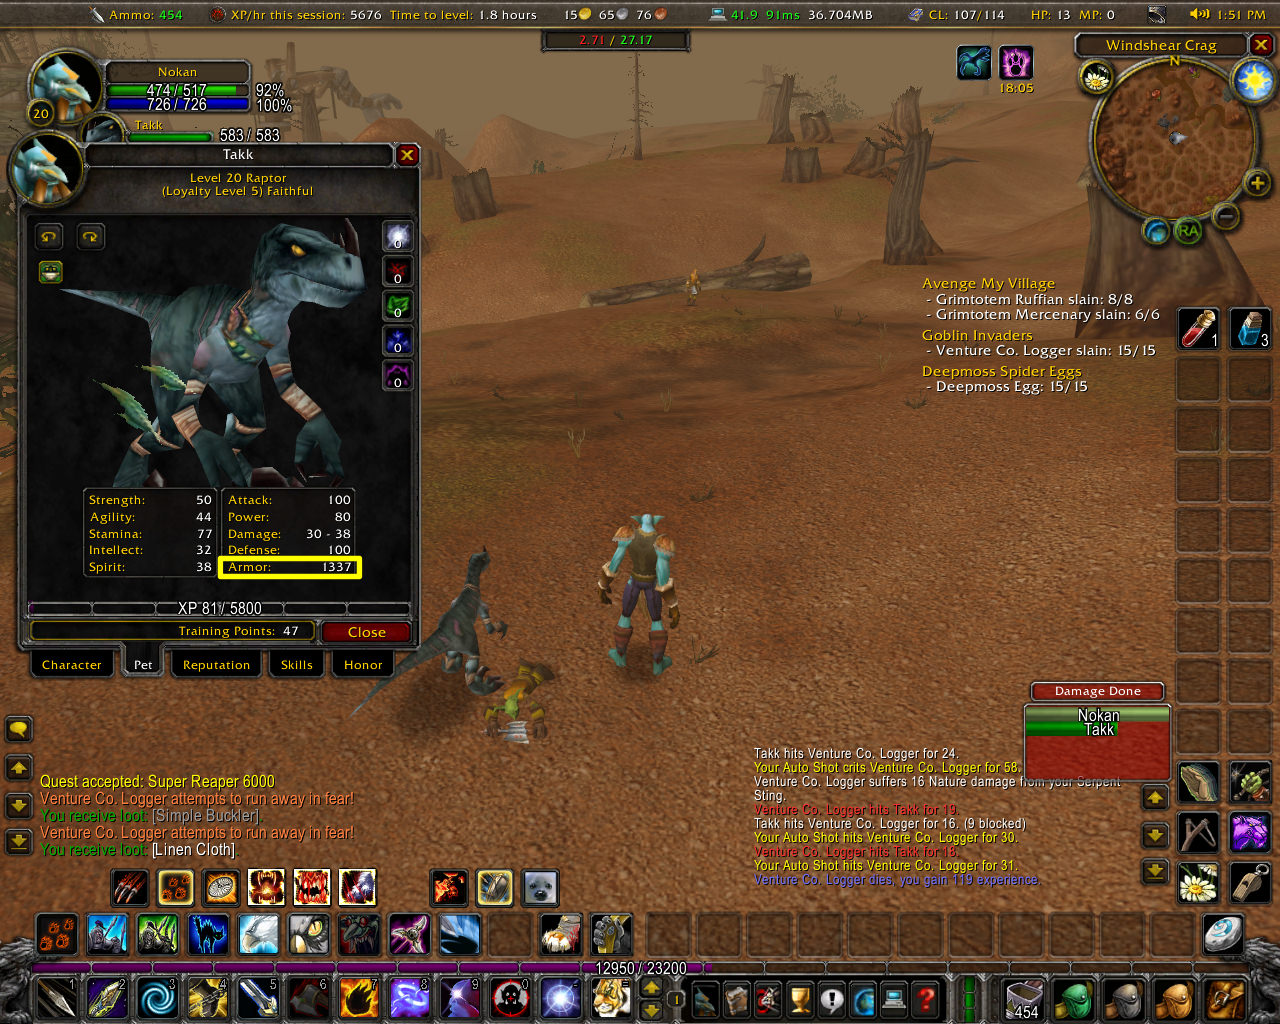 Screenshot of the busy World of Warcraft UI with buttons lining the edges of the screen and a pop-up window laid over a 3D world with multiple characters